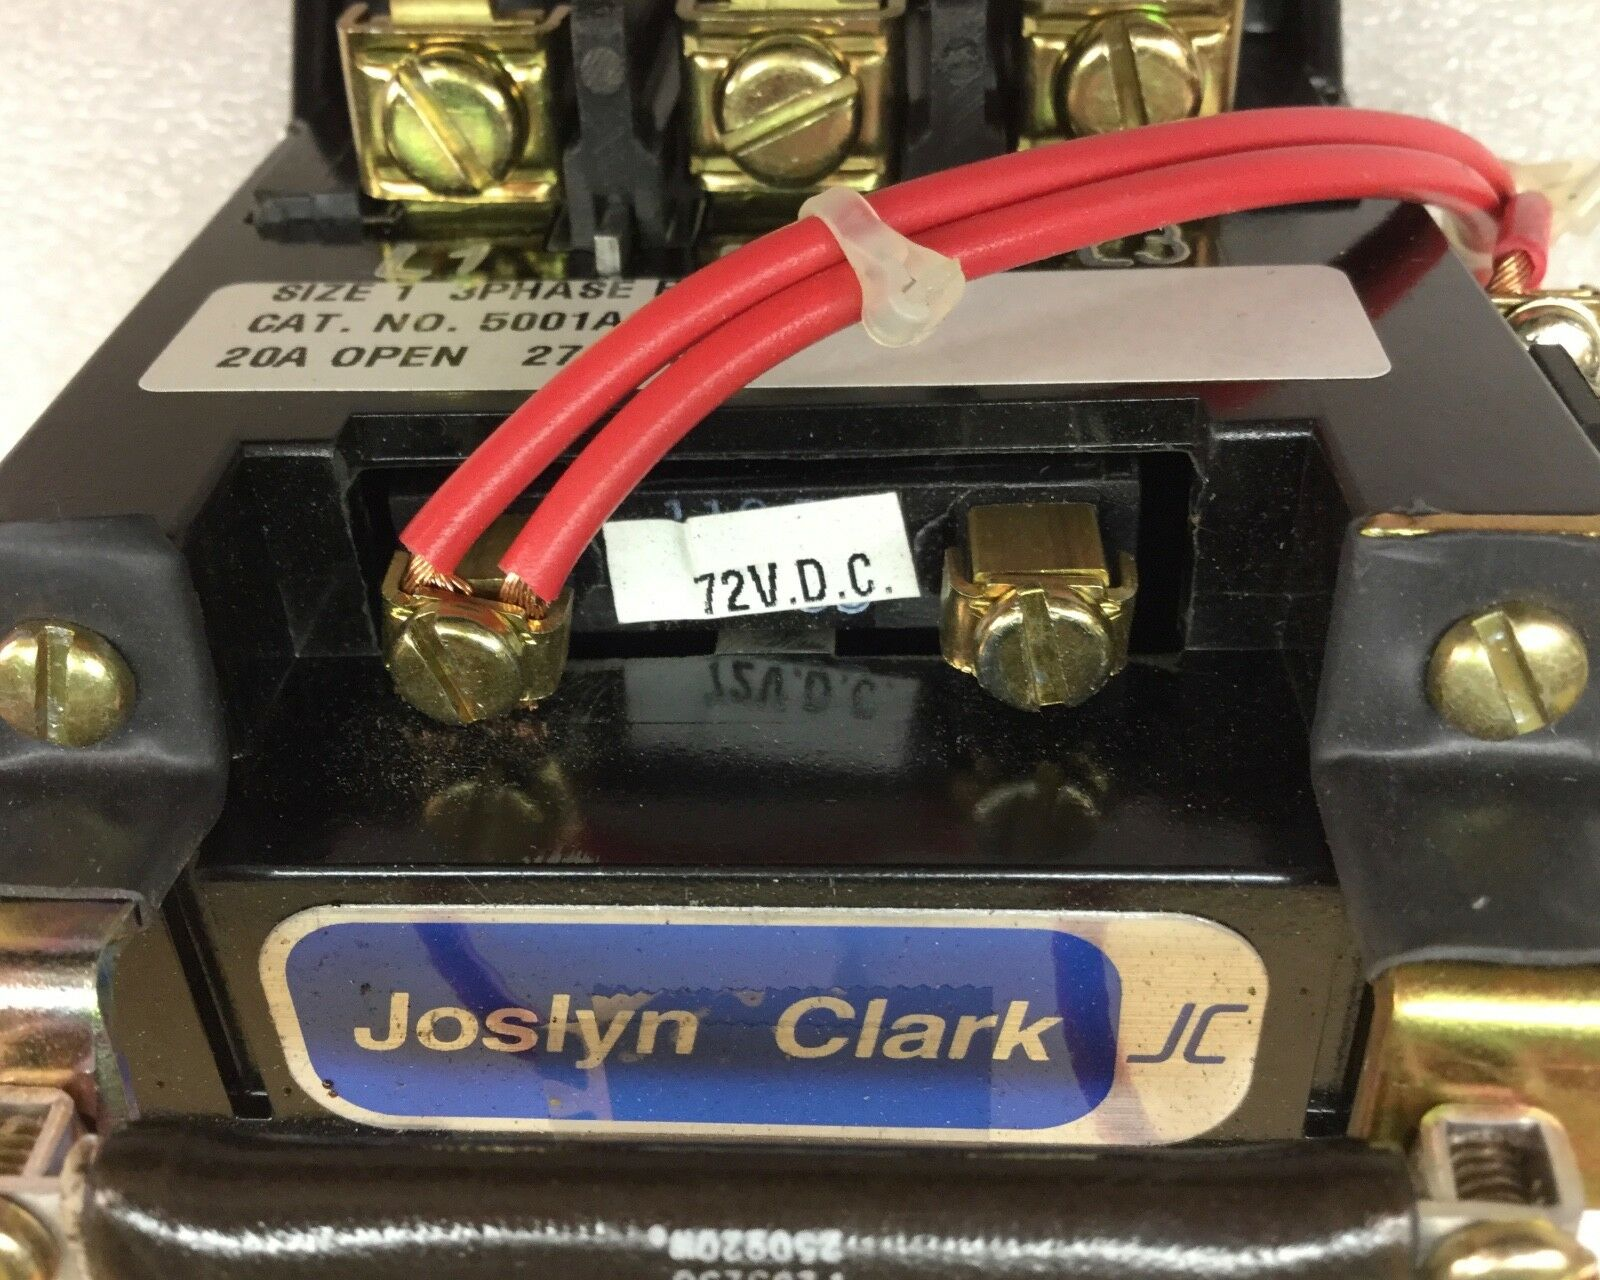 hight resolution of joslyn clark 5001a3000 42 contactor size 1 20amp 3 phase 5001a300042 ebay